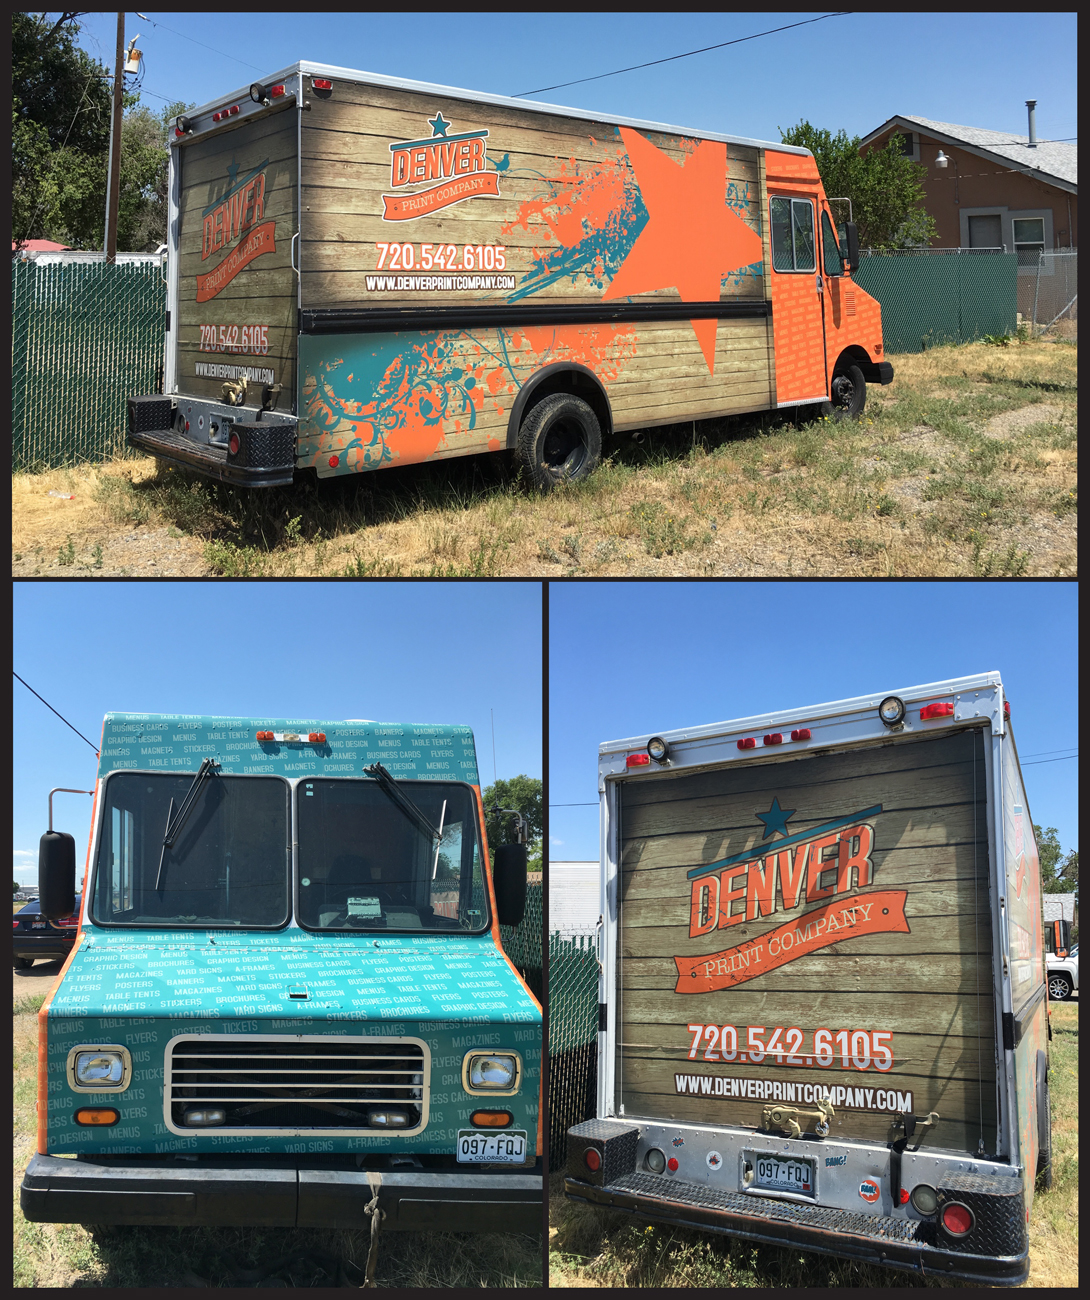 Denver Print company delivery truck wrap graphics